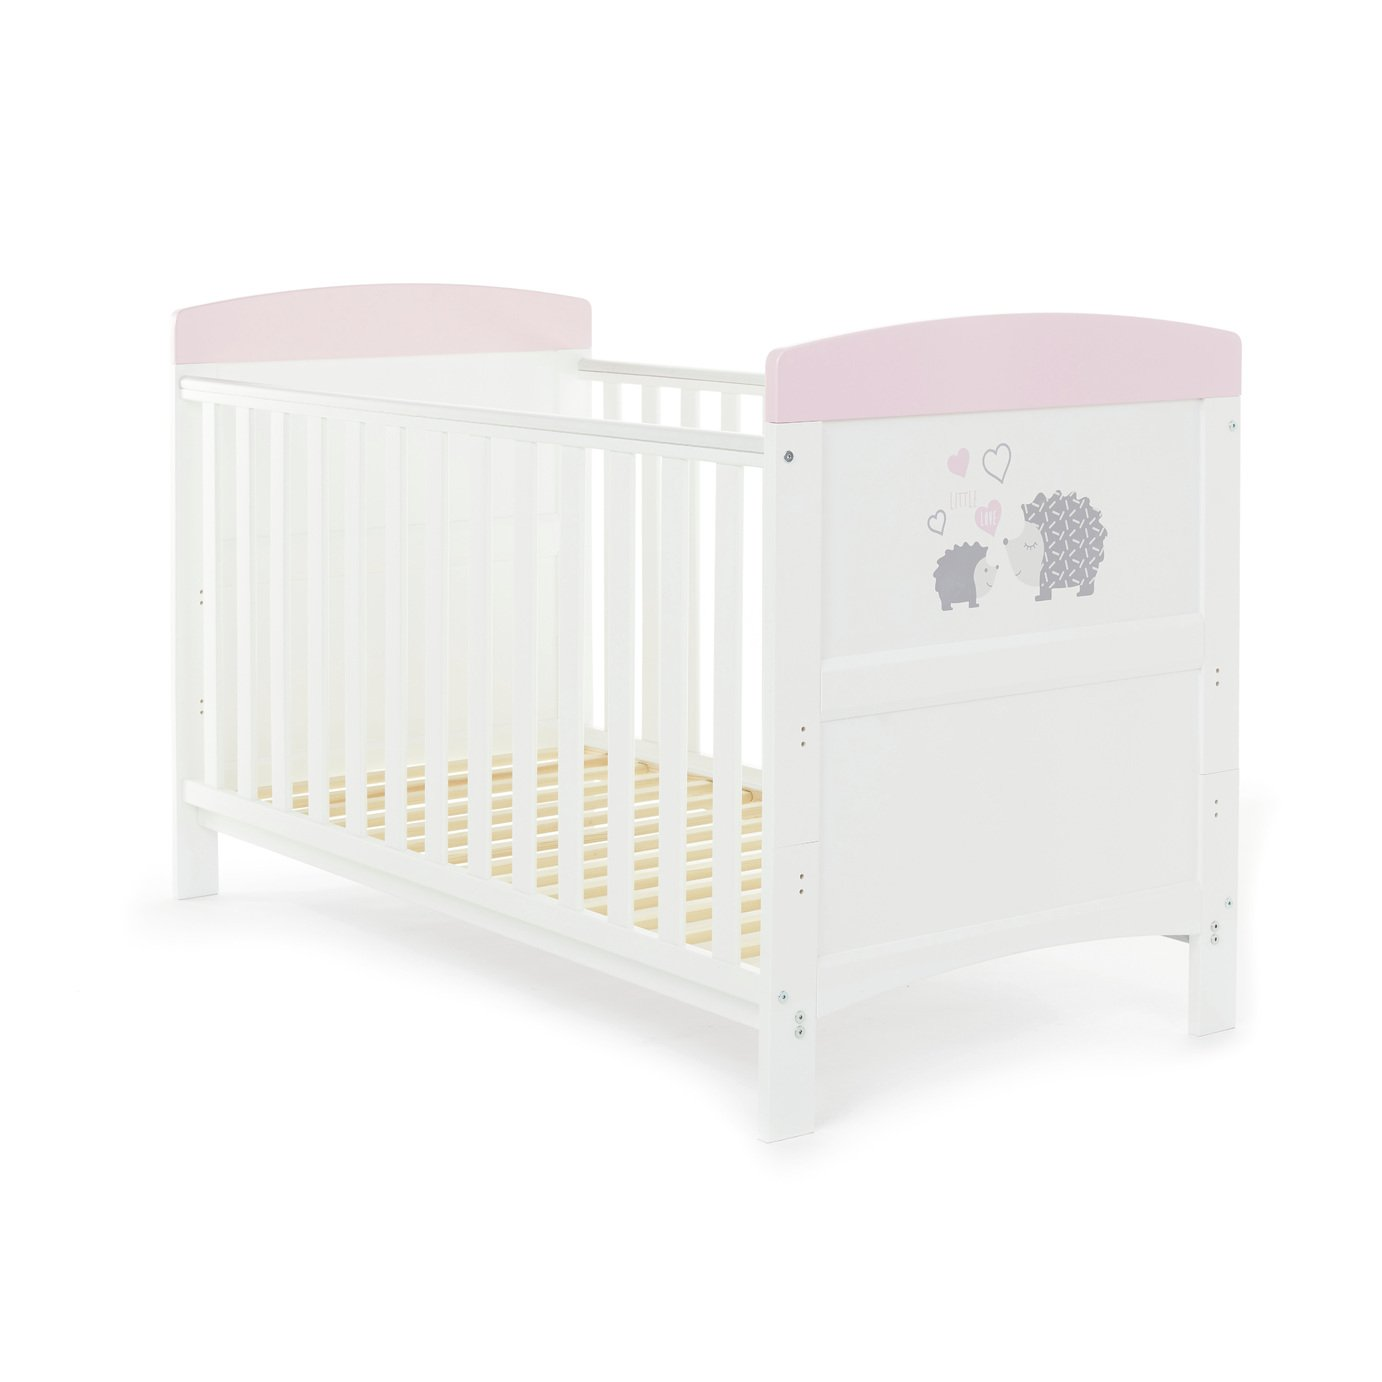 Obaby Hedgehog Cot Bed - Pink (Argos Exclusive)